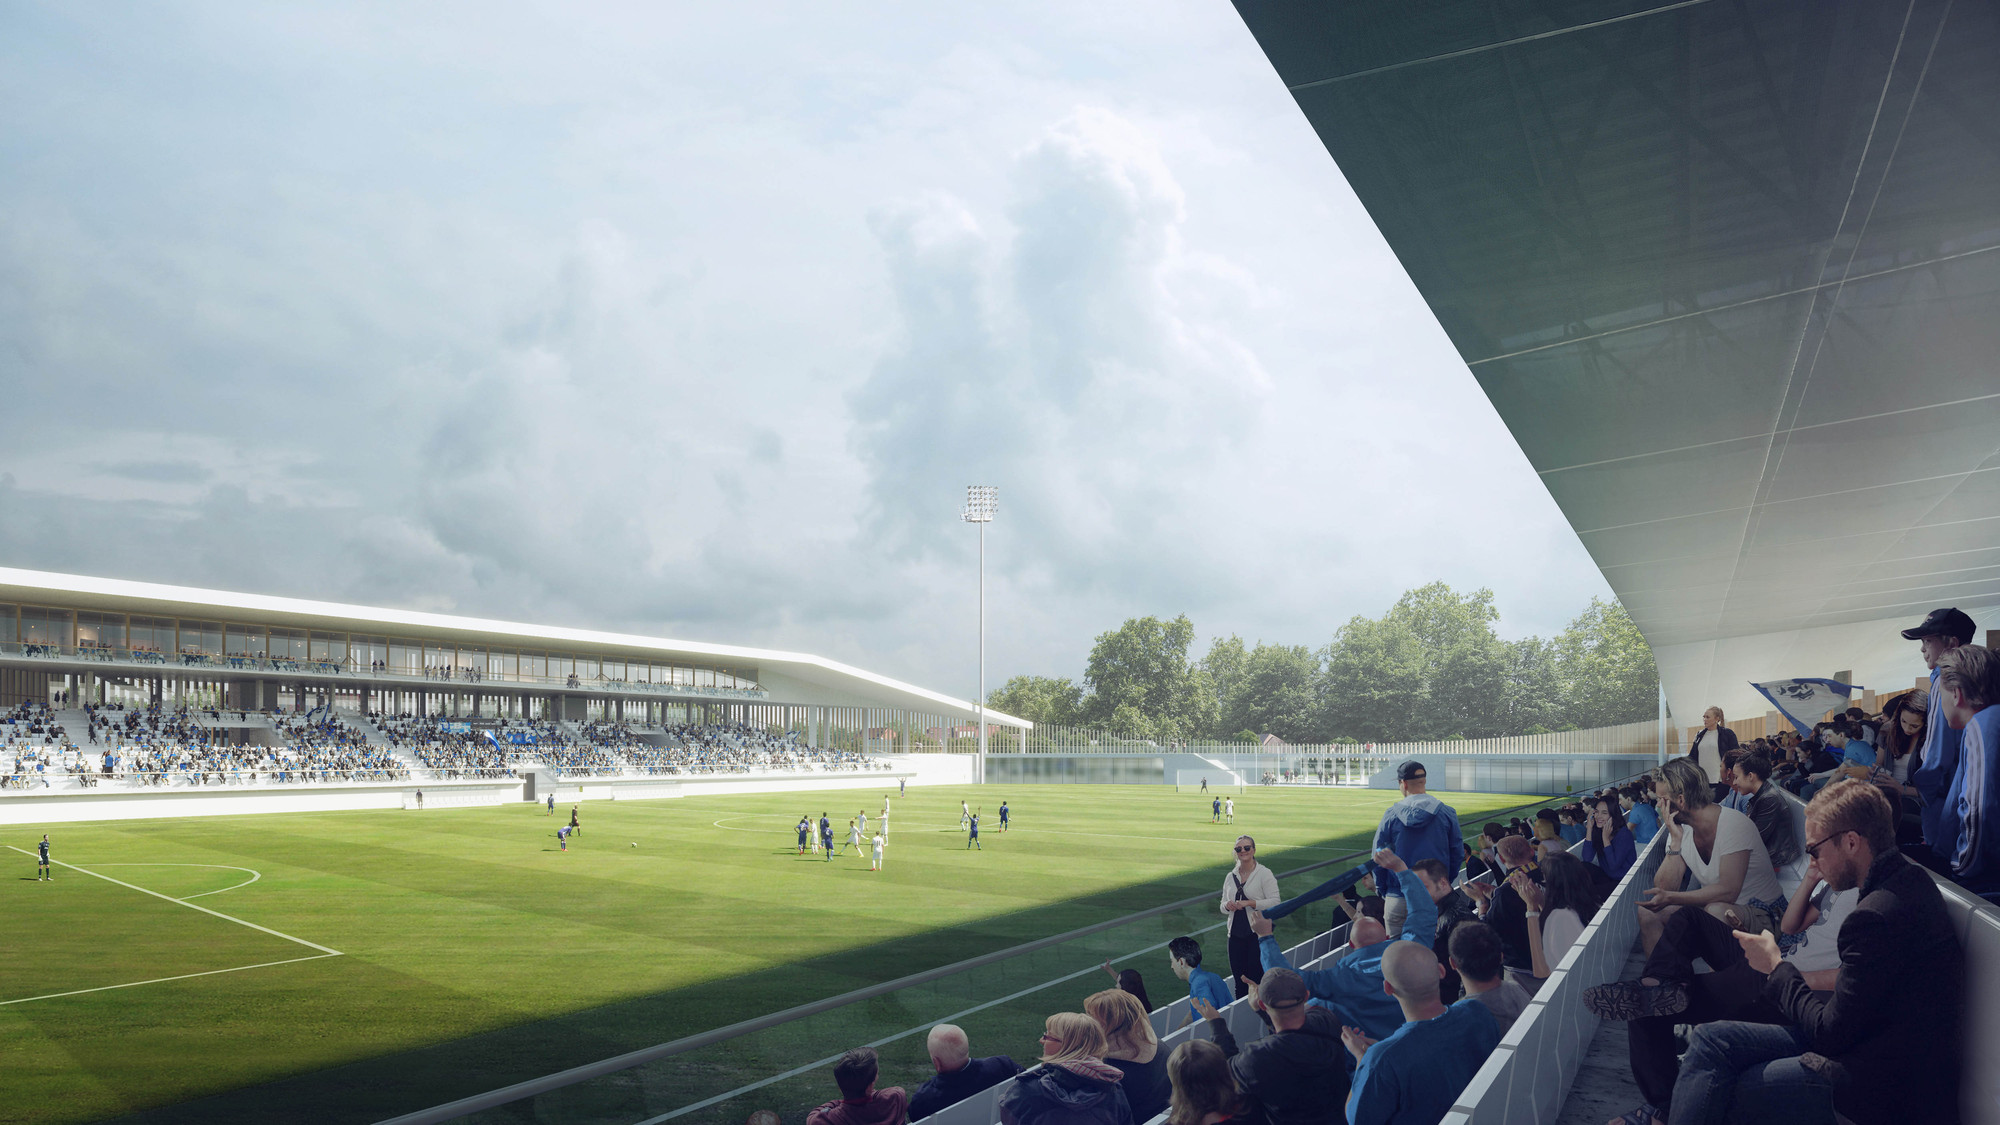 Gallery Of Competition Winning Stadium Design Promotes Inclusivity In Dunkirk France 3